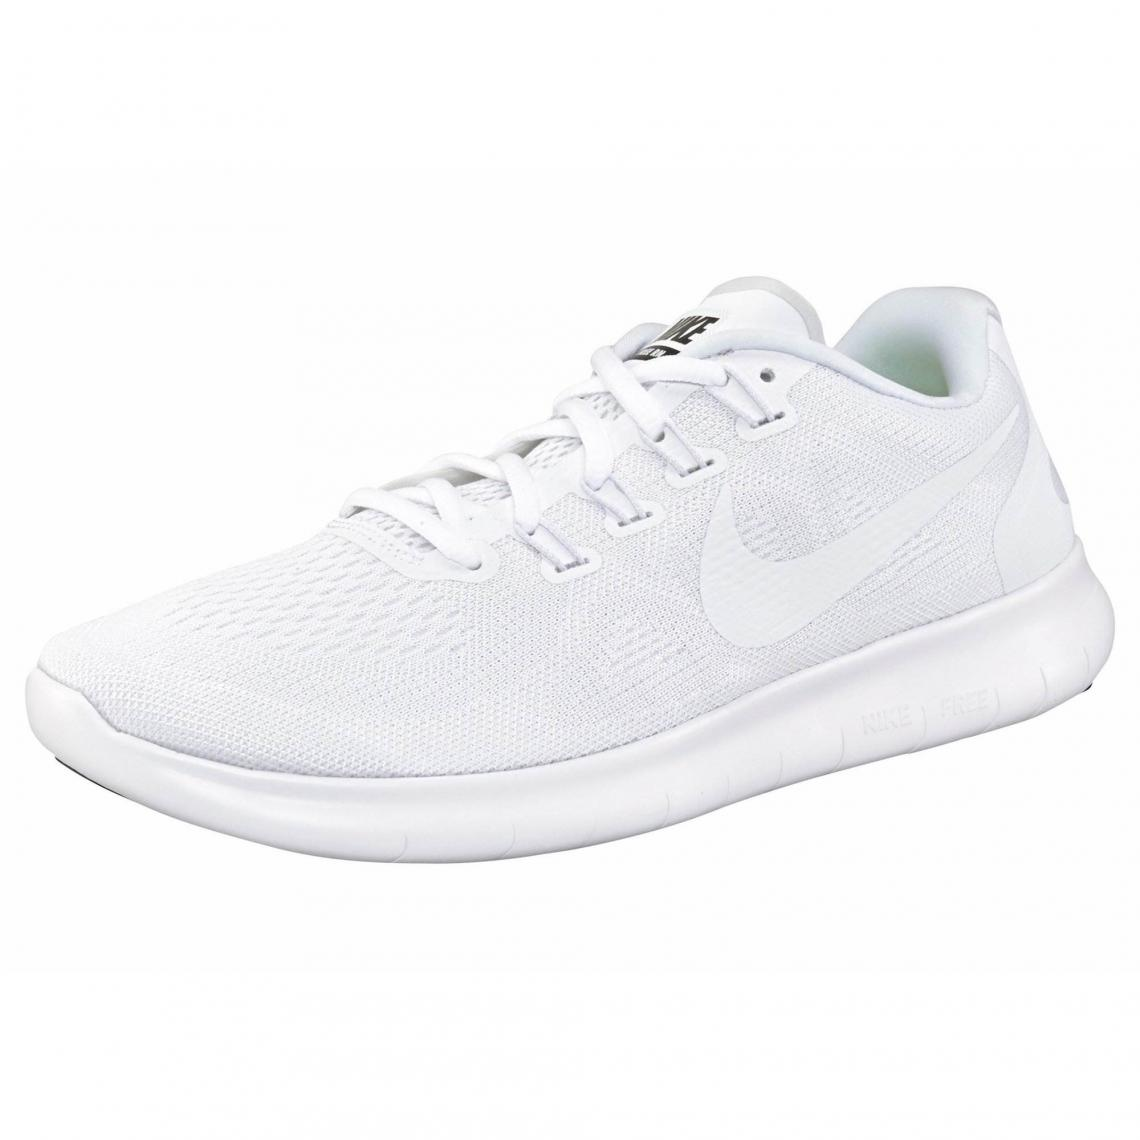 Suisses Chaussures Nike Run De Free Homme 2017 Sport Blanc3 oxBdCe